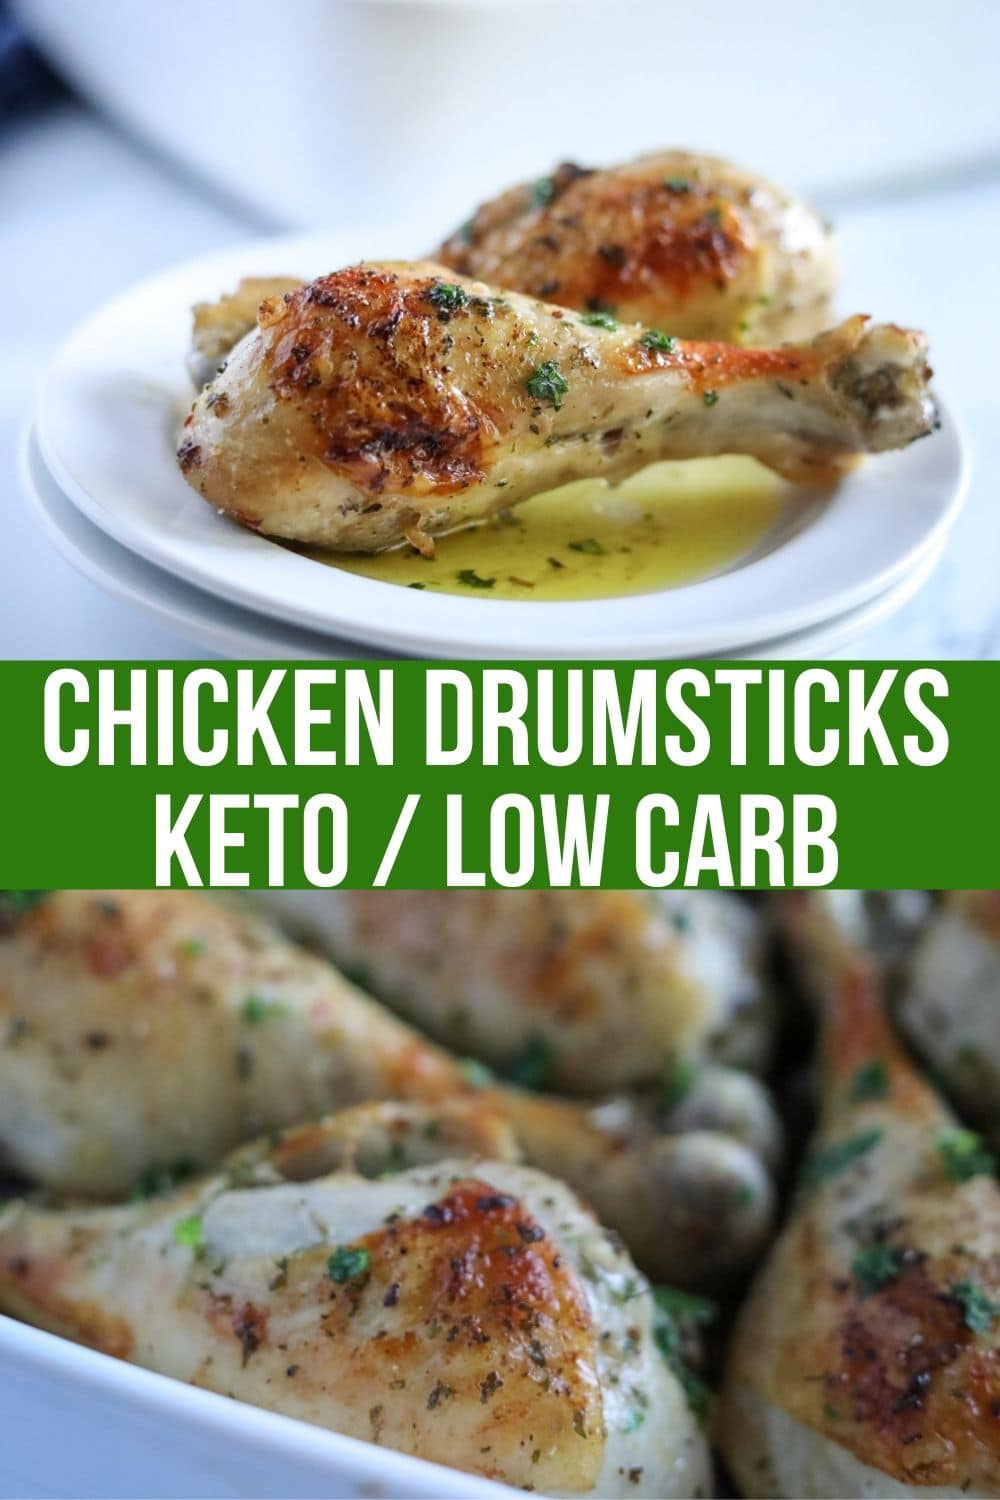 roasted chicken drumsticks on a dish with herbs on top